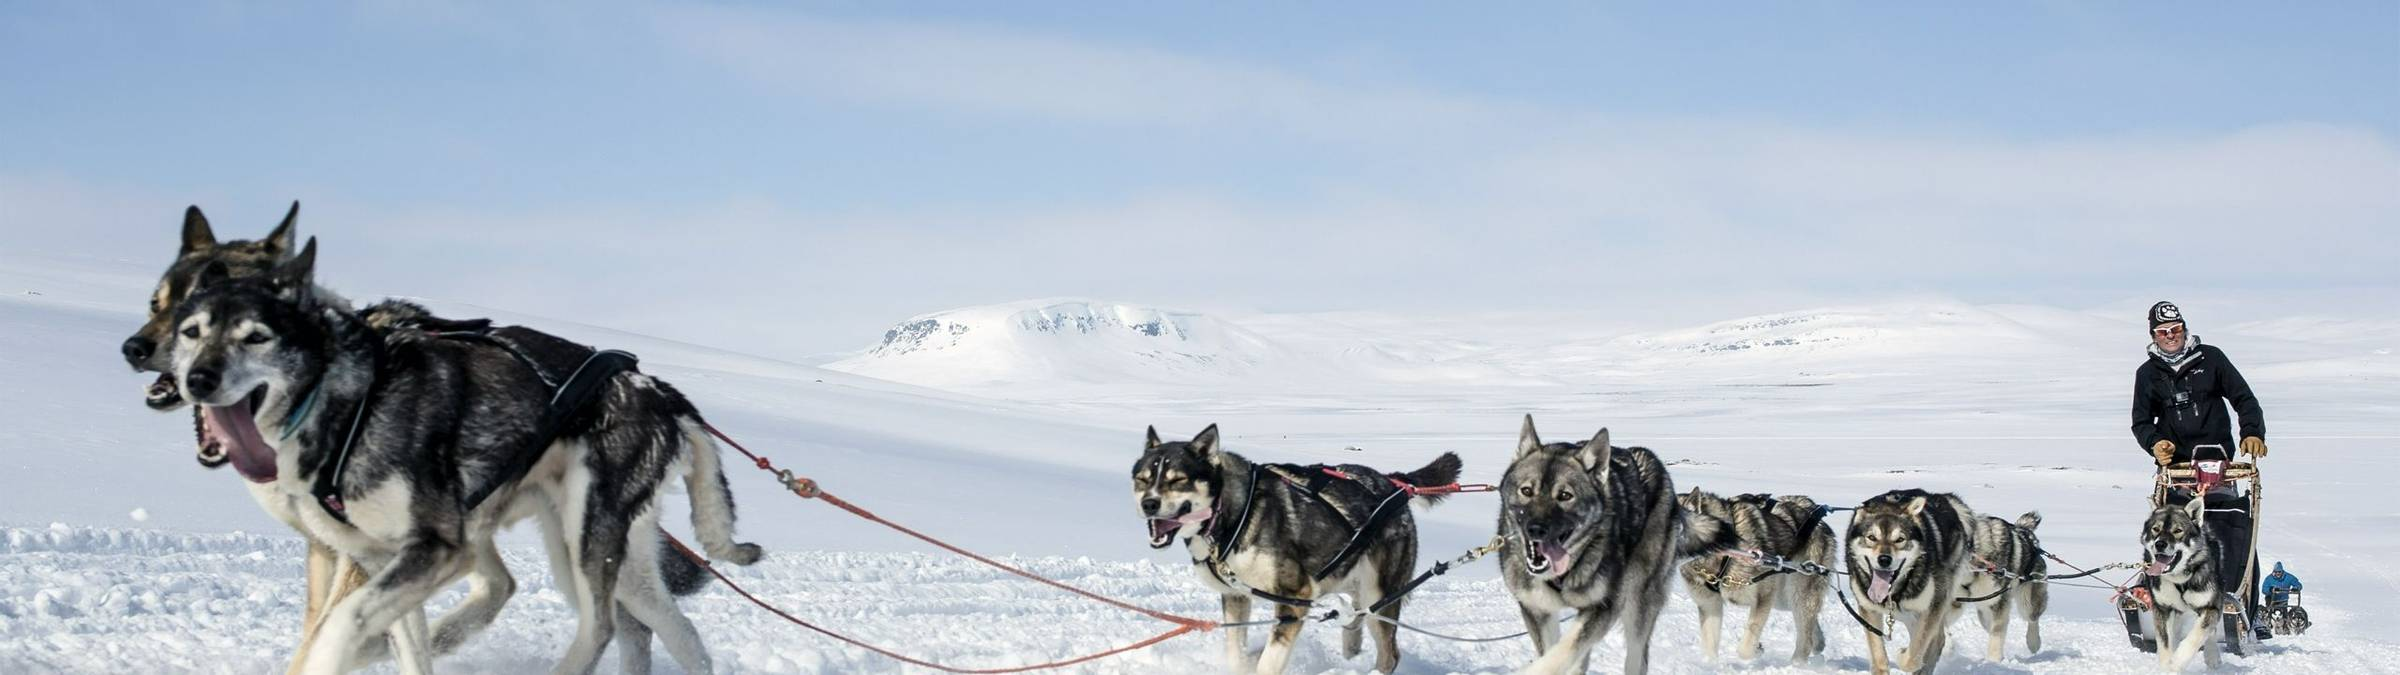 Harriniva Hotels & Safaris Huskies 21